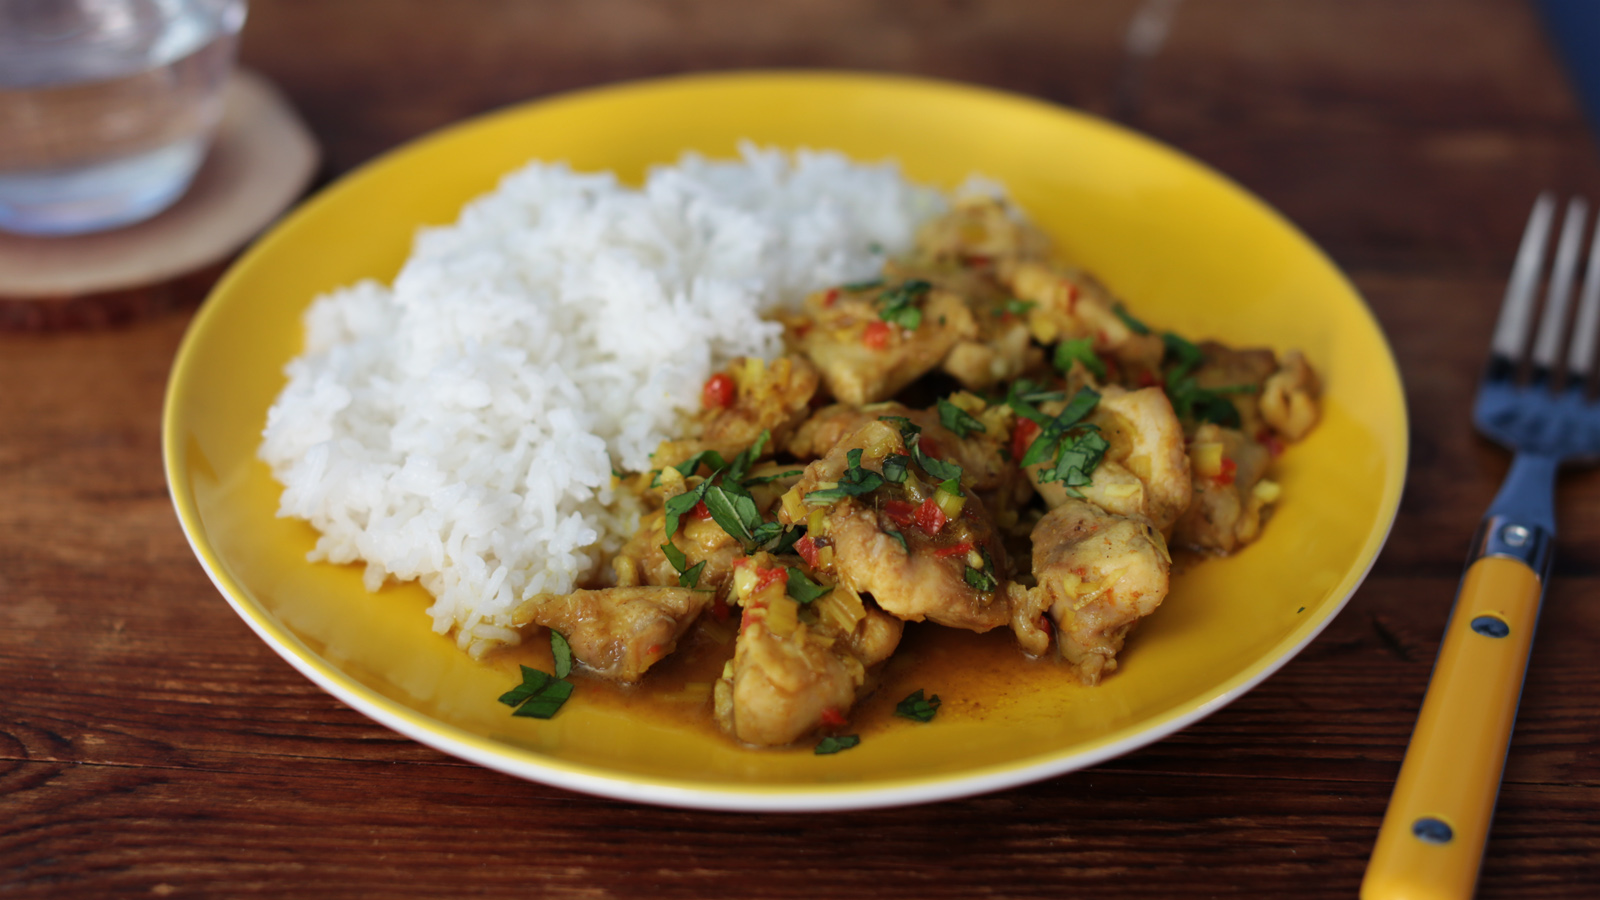 Chilli And Lemongrass Chicken Recipe Bbc Food